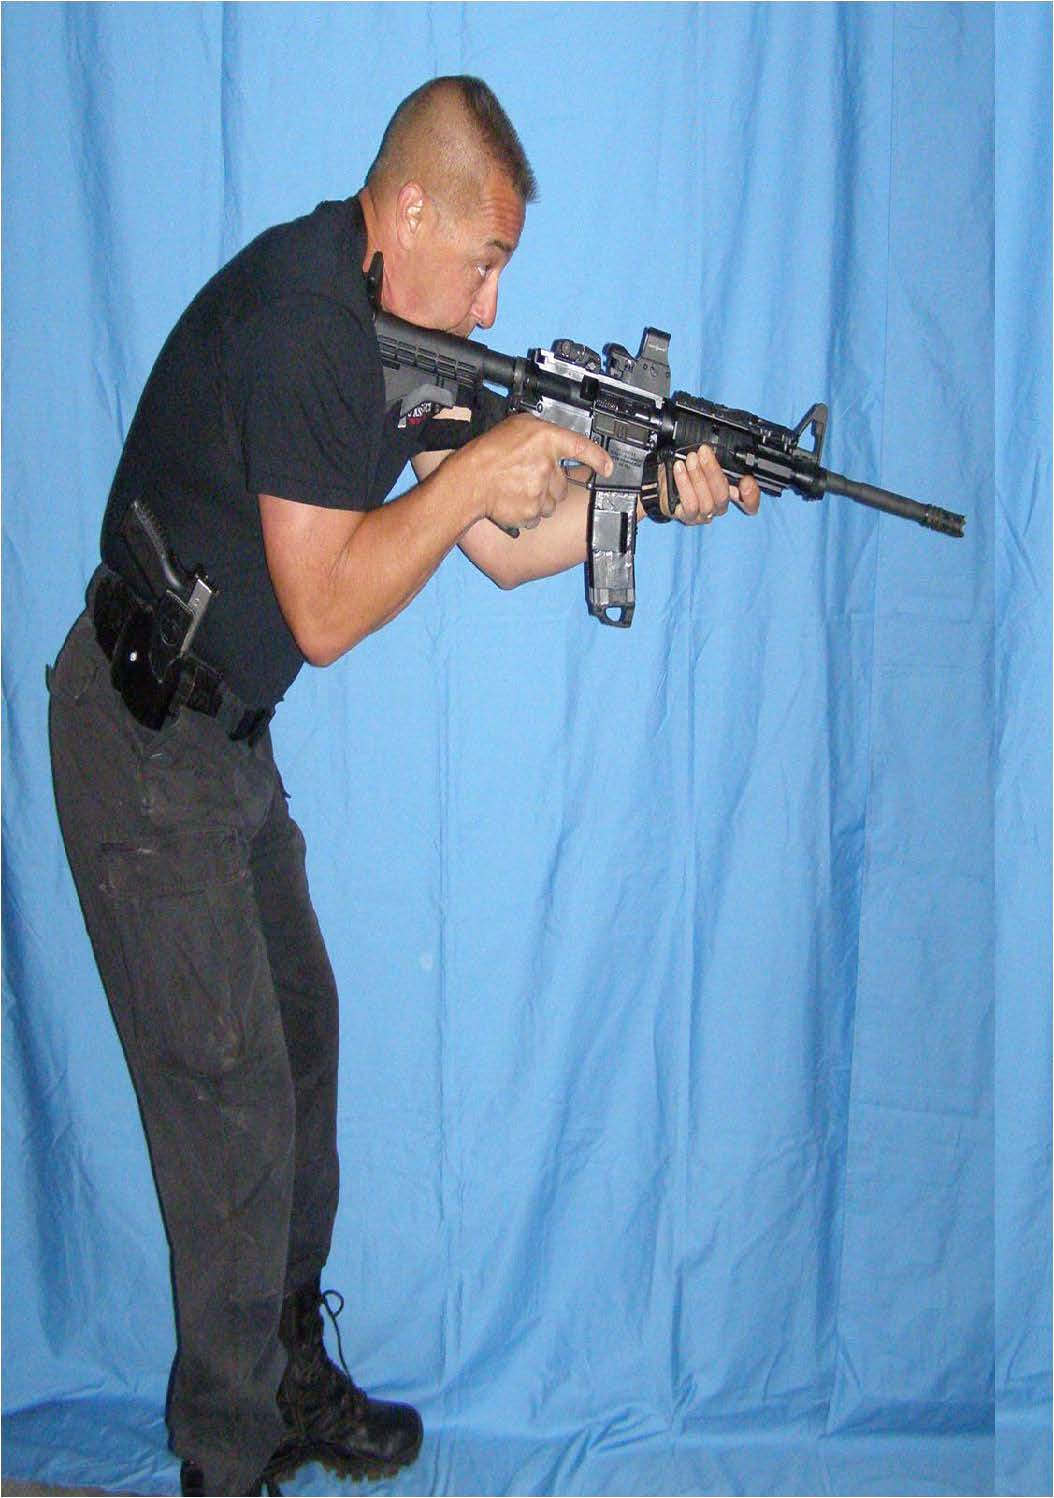 tactical-rifle-stance-for-residential-and-urban-use-3.jpg